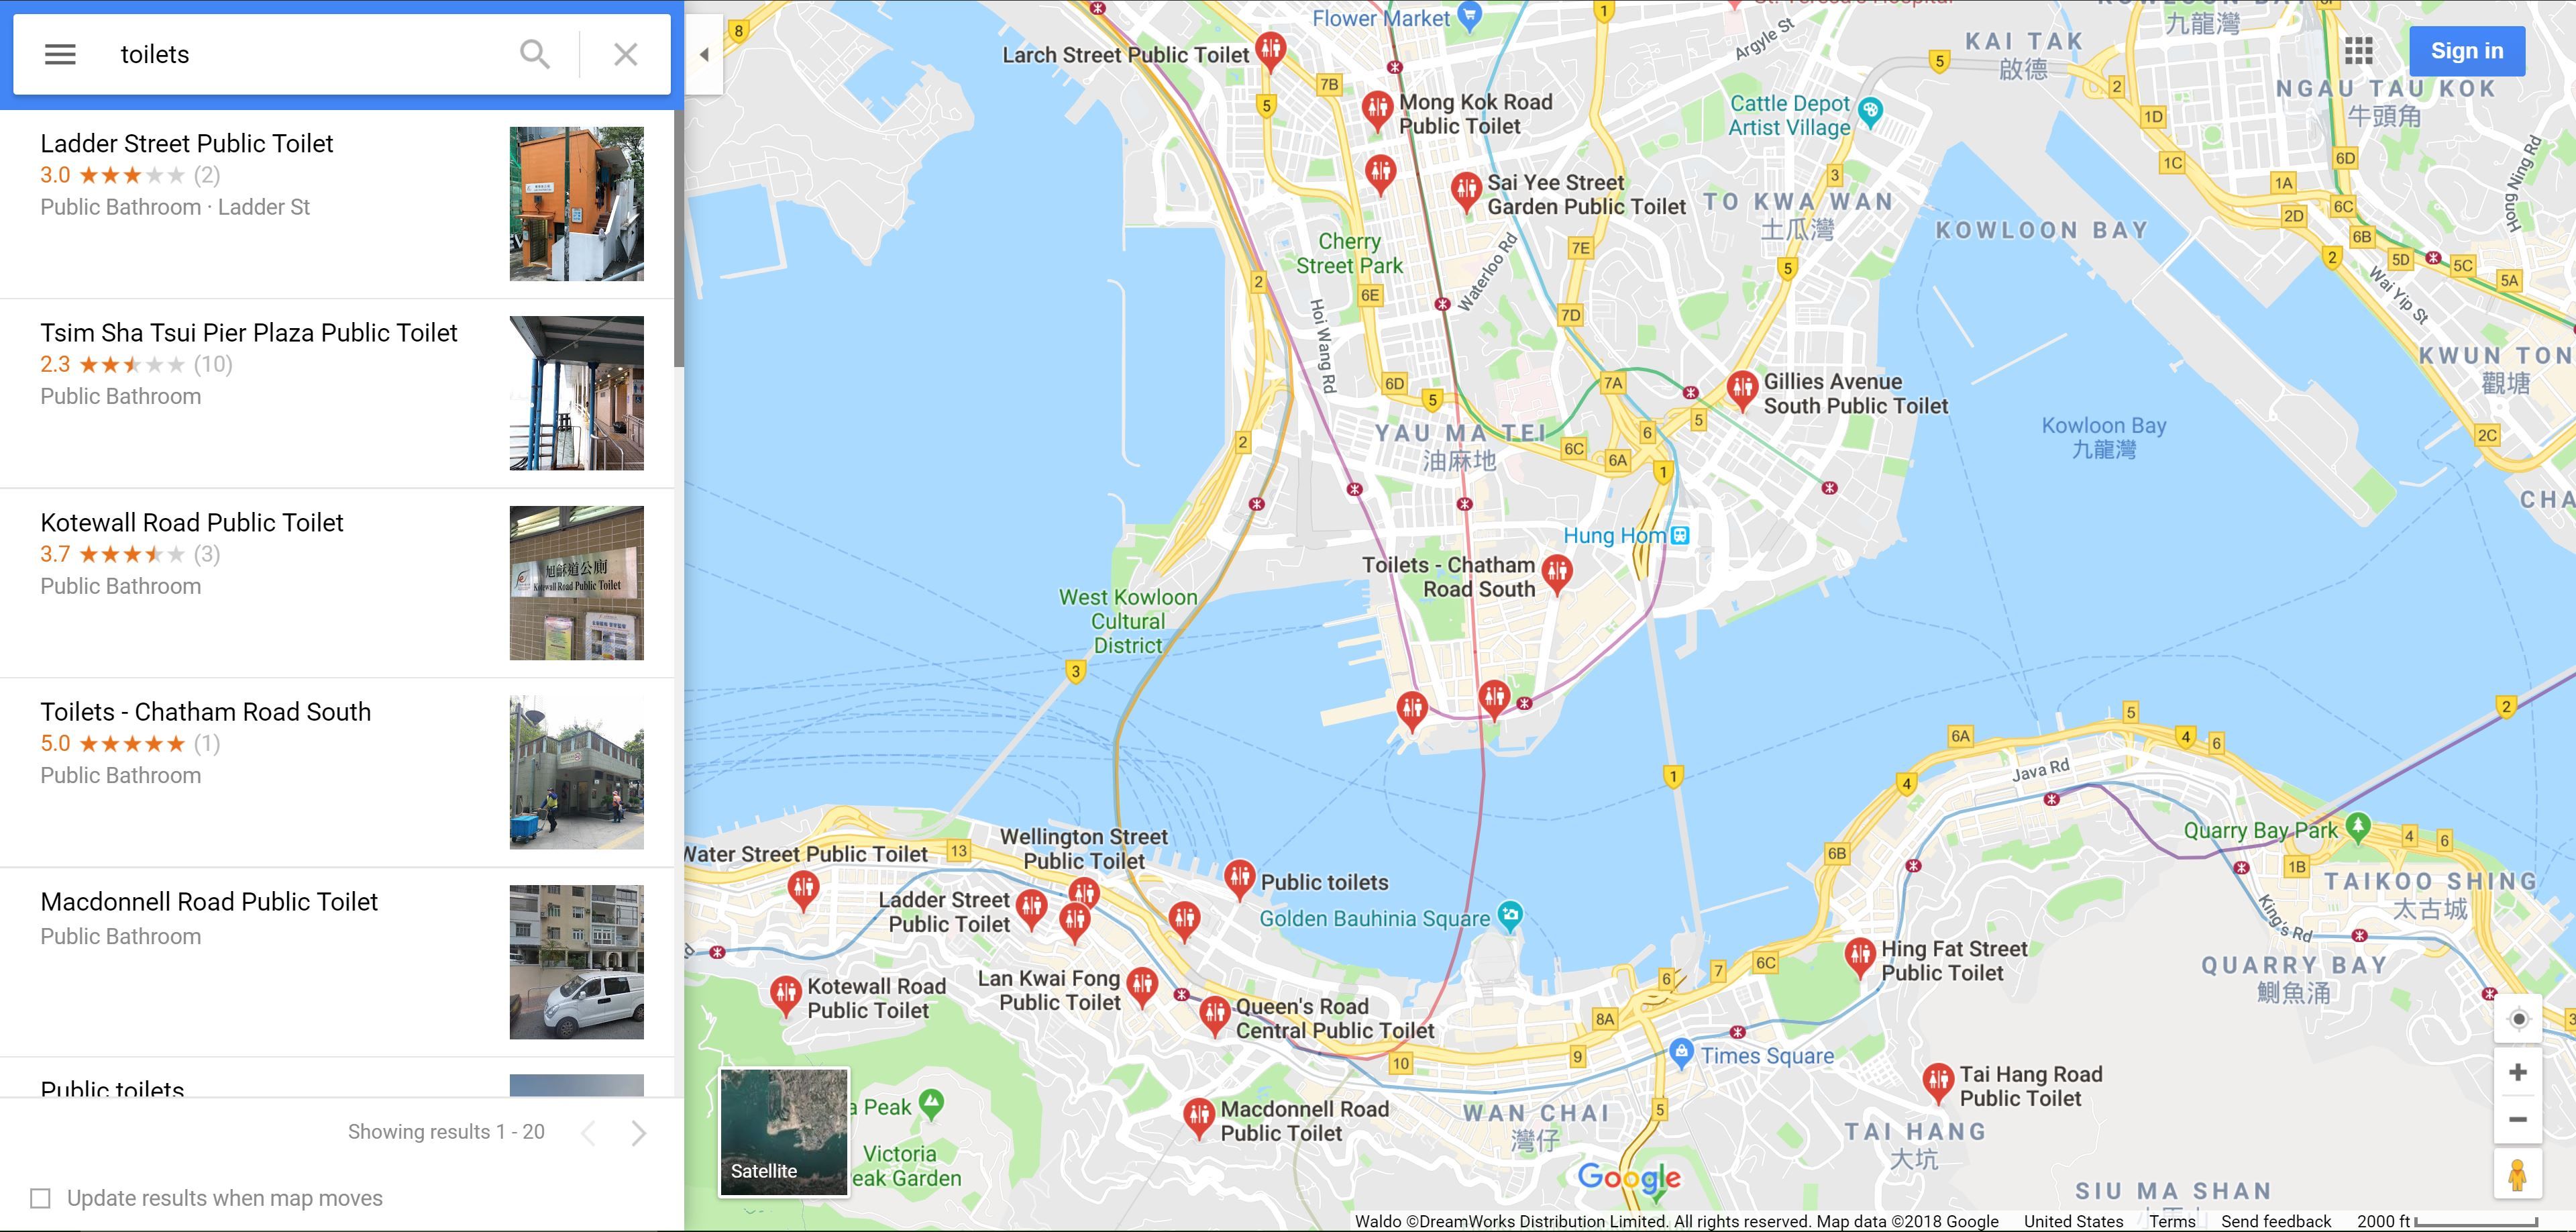 Travel Tip of the Week: If You Need to Go in Hong Kong, Use Google Maps